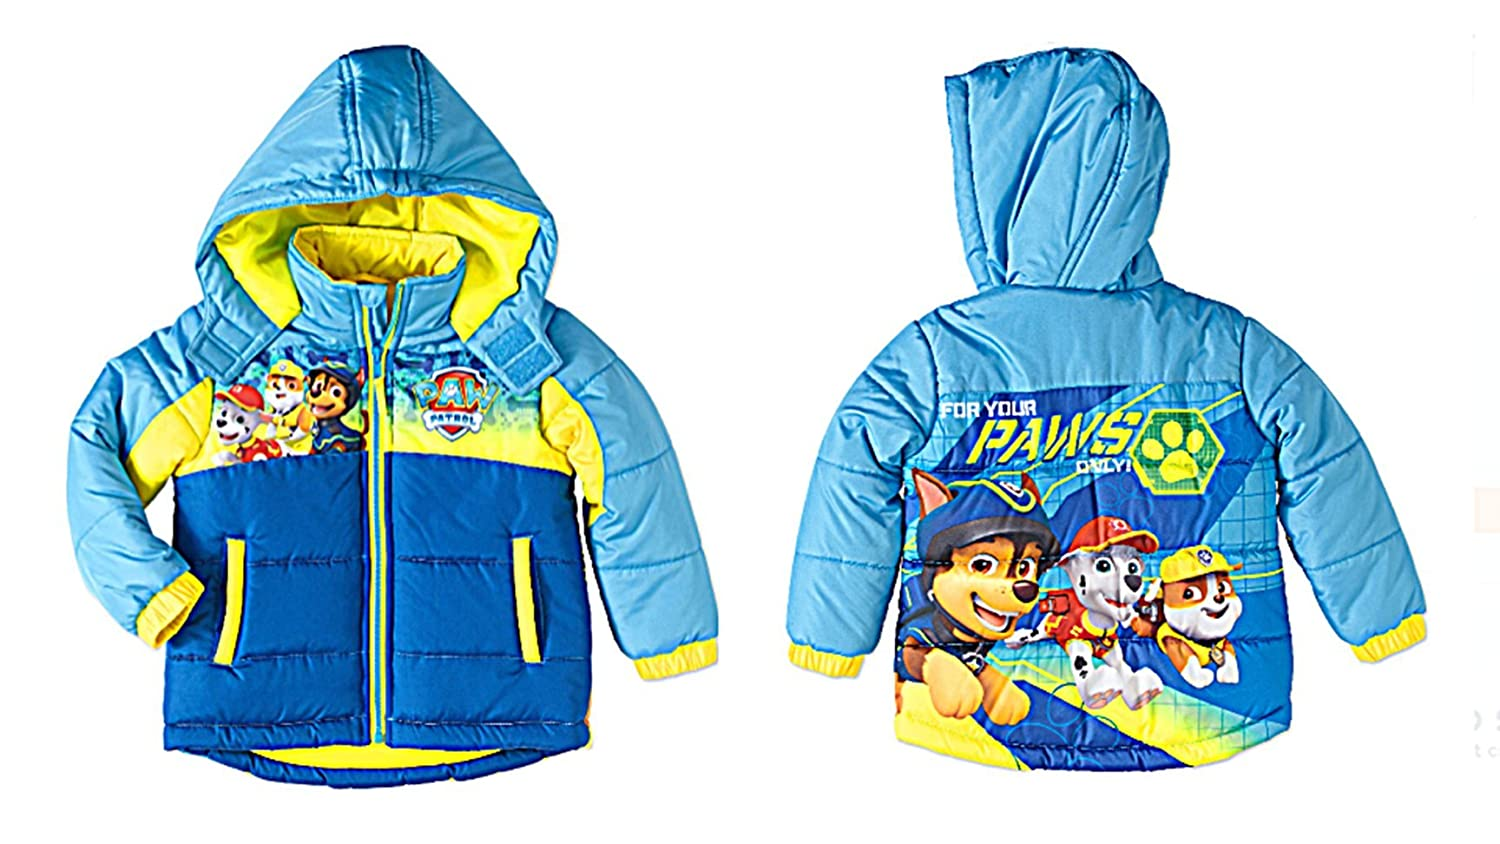 cb64902f6ce7 Amazon.com  Paw Patrol For Your Paws Only Toddler Boys Blue Hooded ...